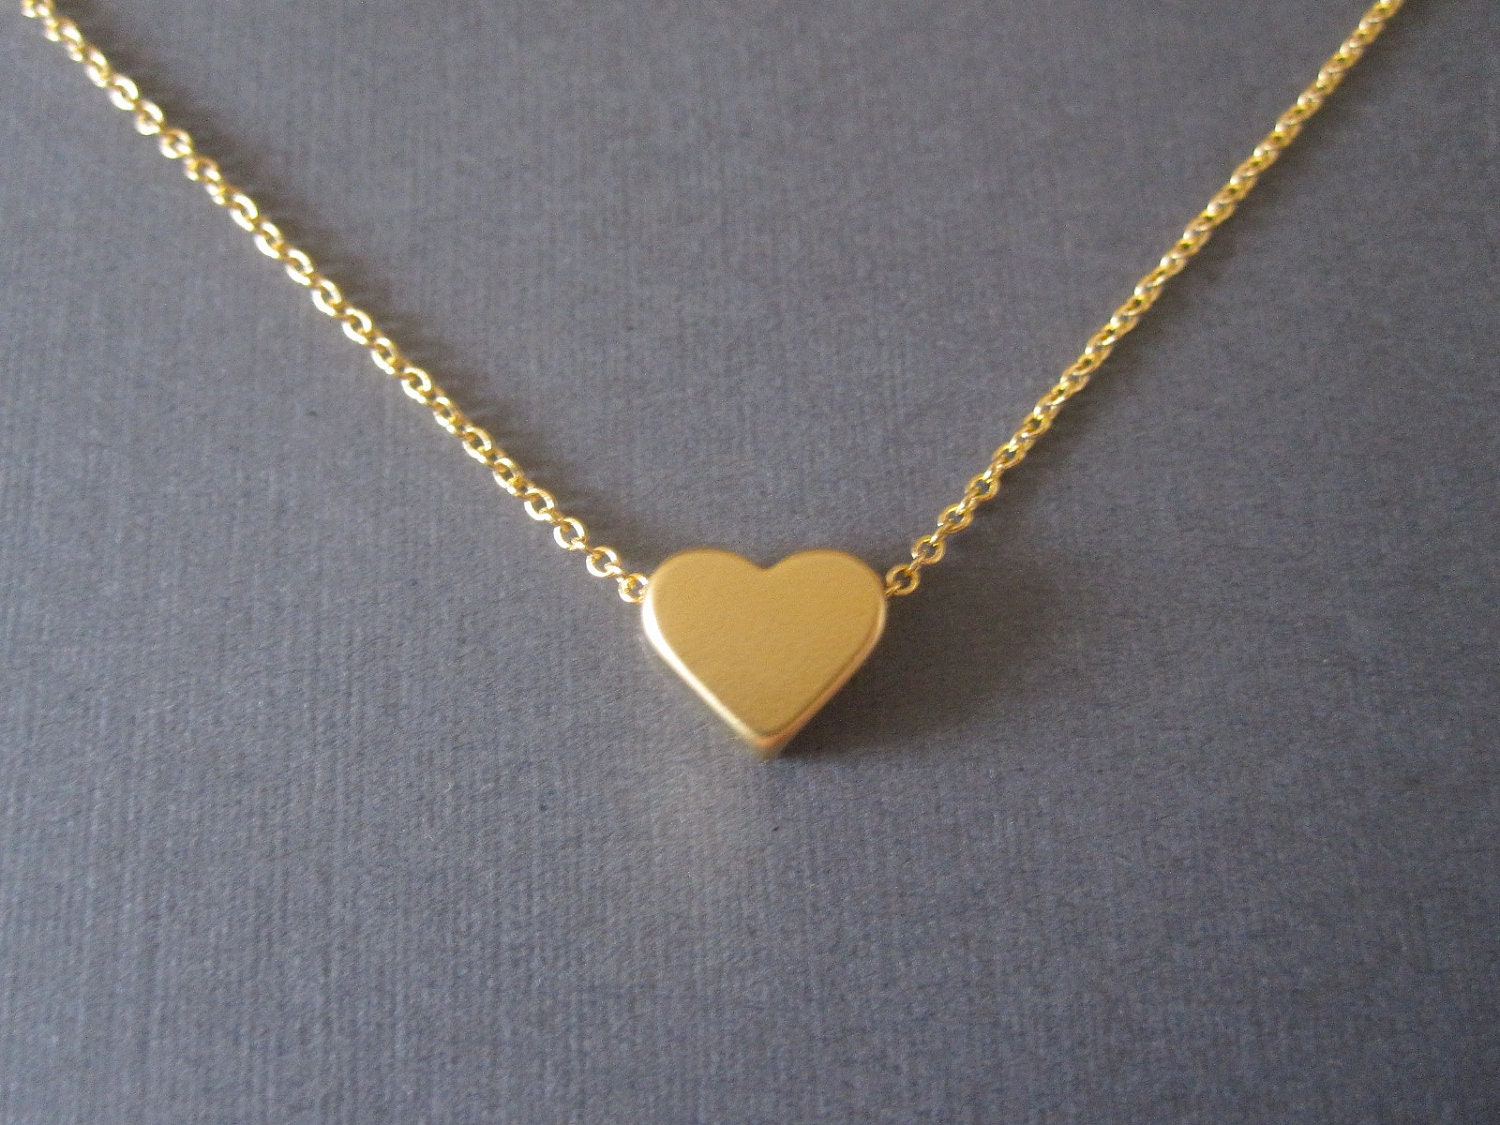 all initial vana minthologie shop necklace heart